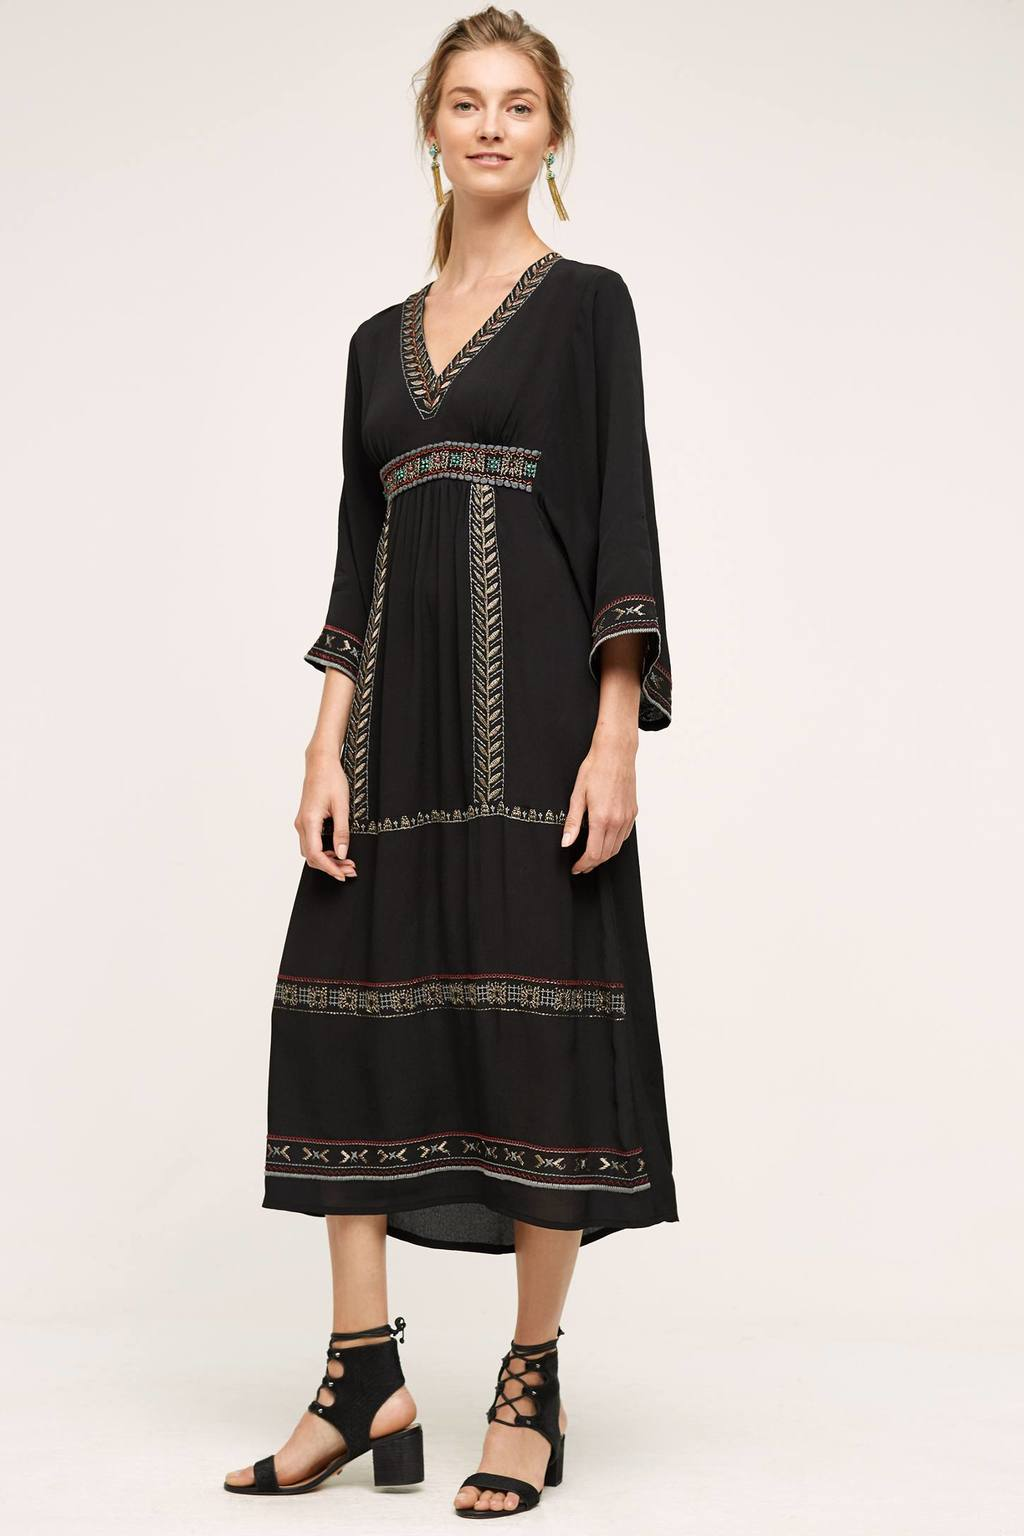 Isabel Beaded Midi Dress, Black - length: calf length; neckline: low v-neck; sleeve style: angel/waterfall; fit: empire; style: sundress; secondary colour: white; predominant colour: black; occasions: casual, holiday; fibres: cotton - 100%; hip detail: soft pleats at hip/draping at hip/flared at hip; sleeve length: 3/4 length; trends: monochrome; texture group: cotton feel fabrics; pattern type: fabric; pattern size: standard; pattern: patterned/print; embellishment: embroidered; season: a/w 2016